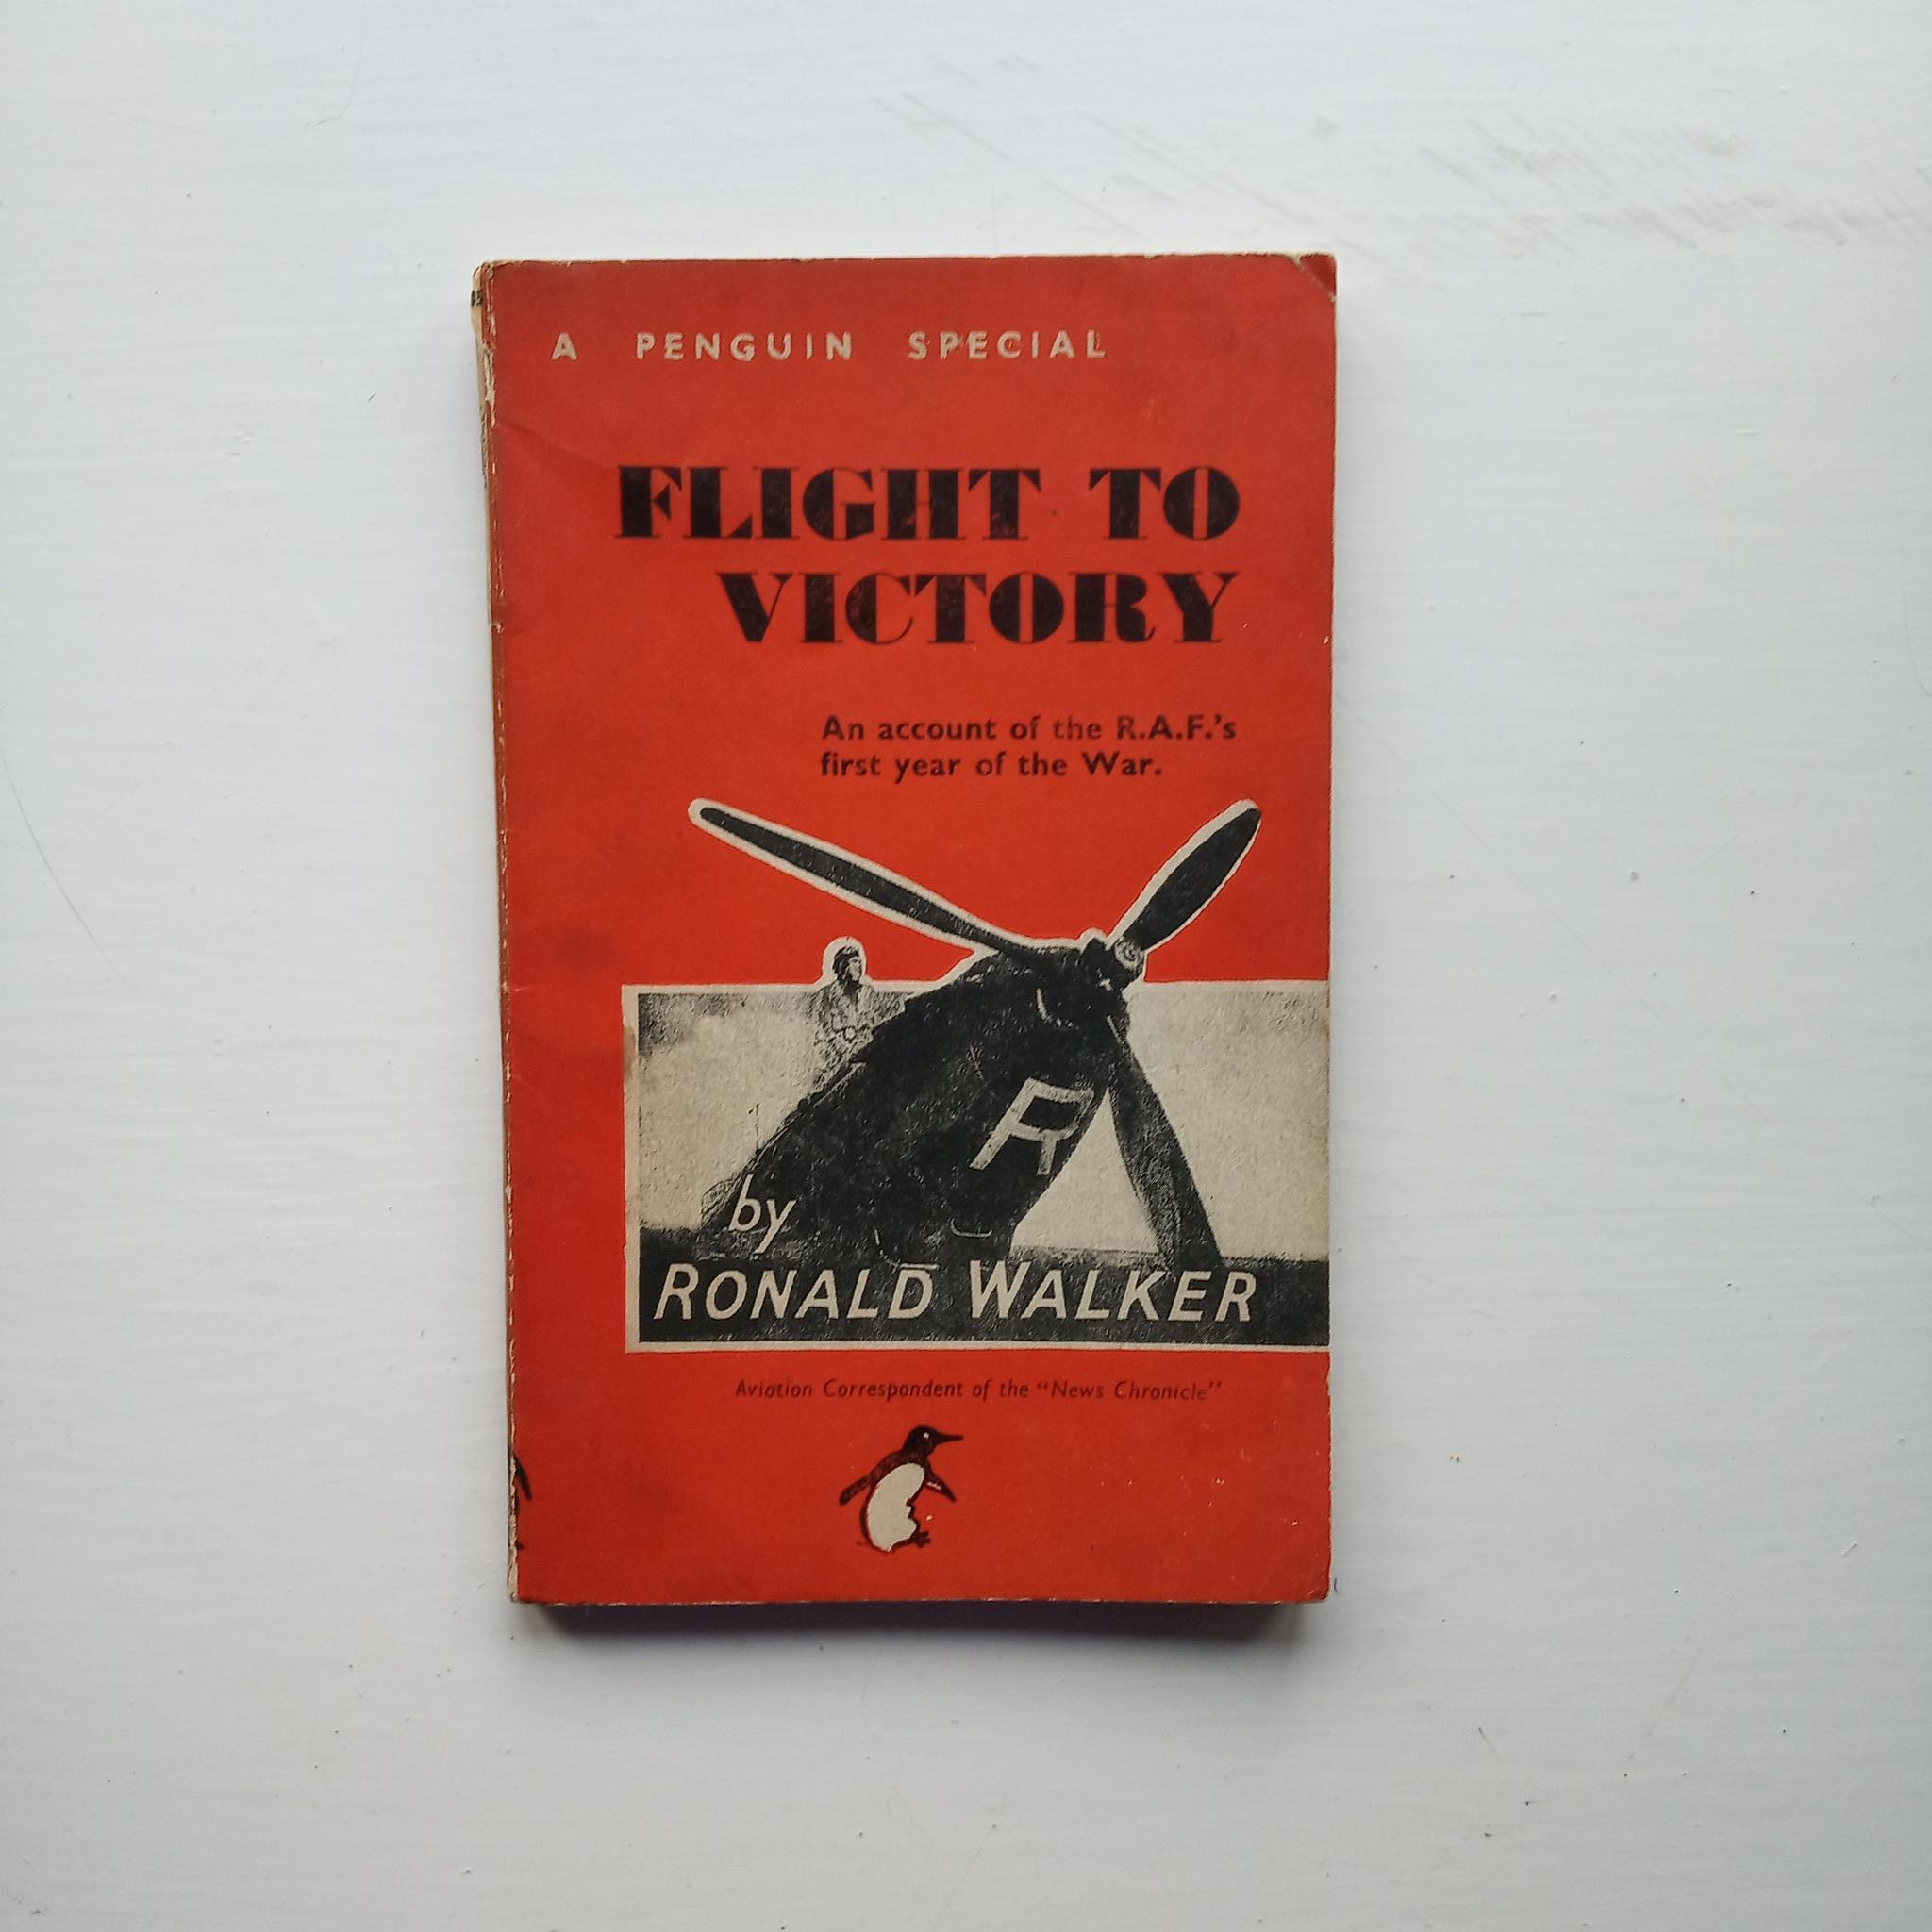 Flight to Victory by Ronald Walker